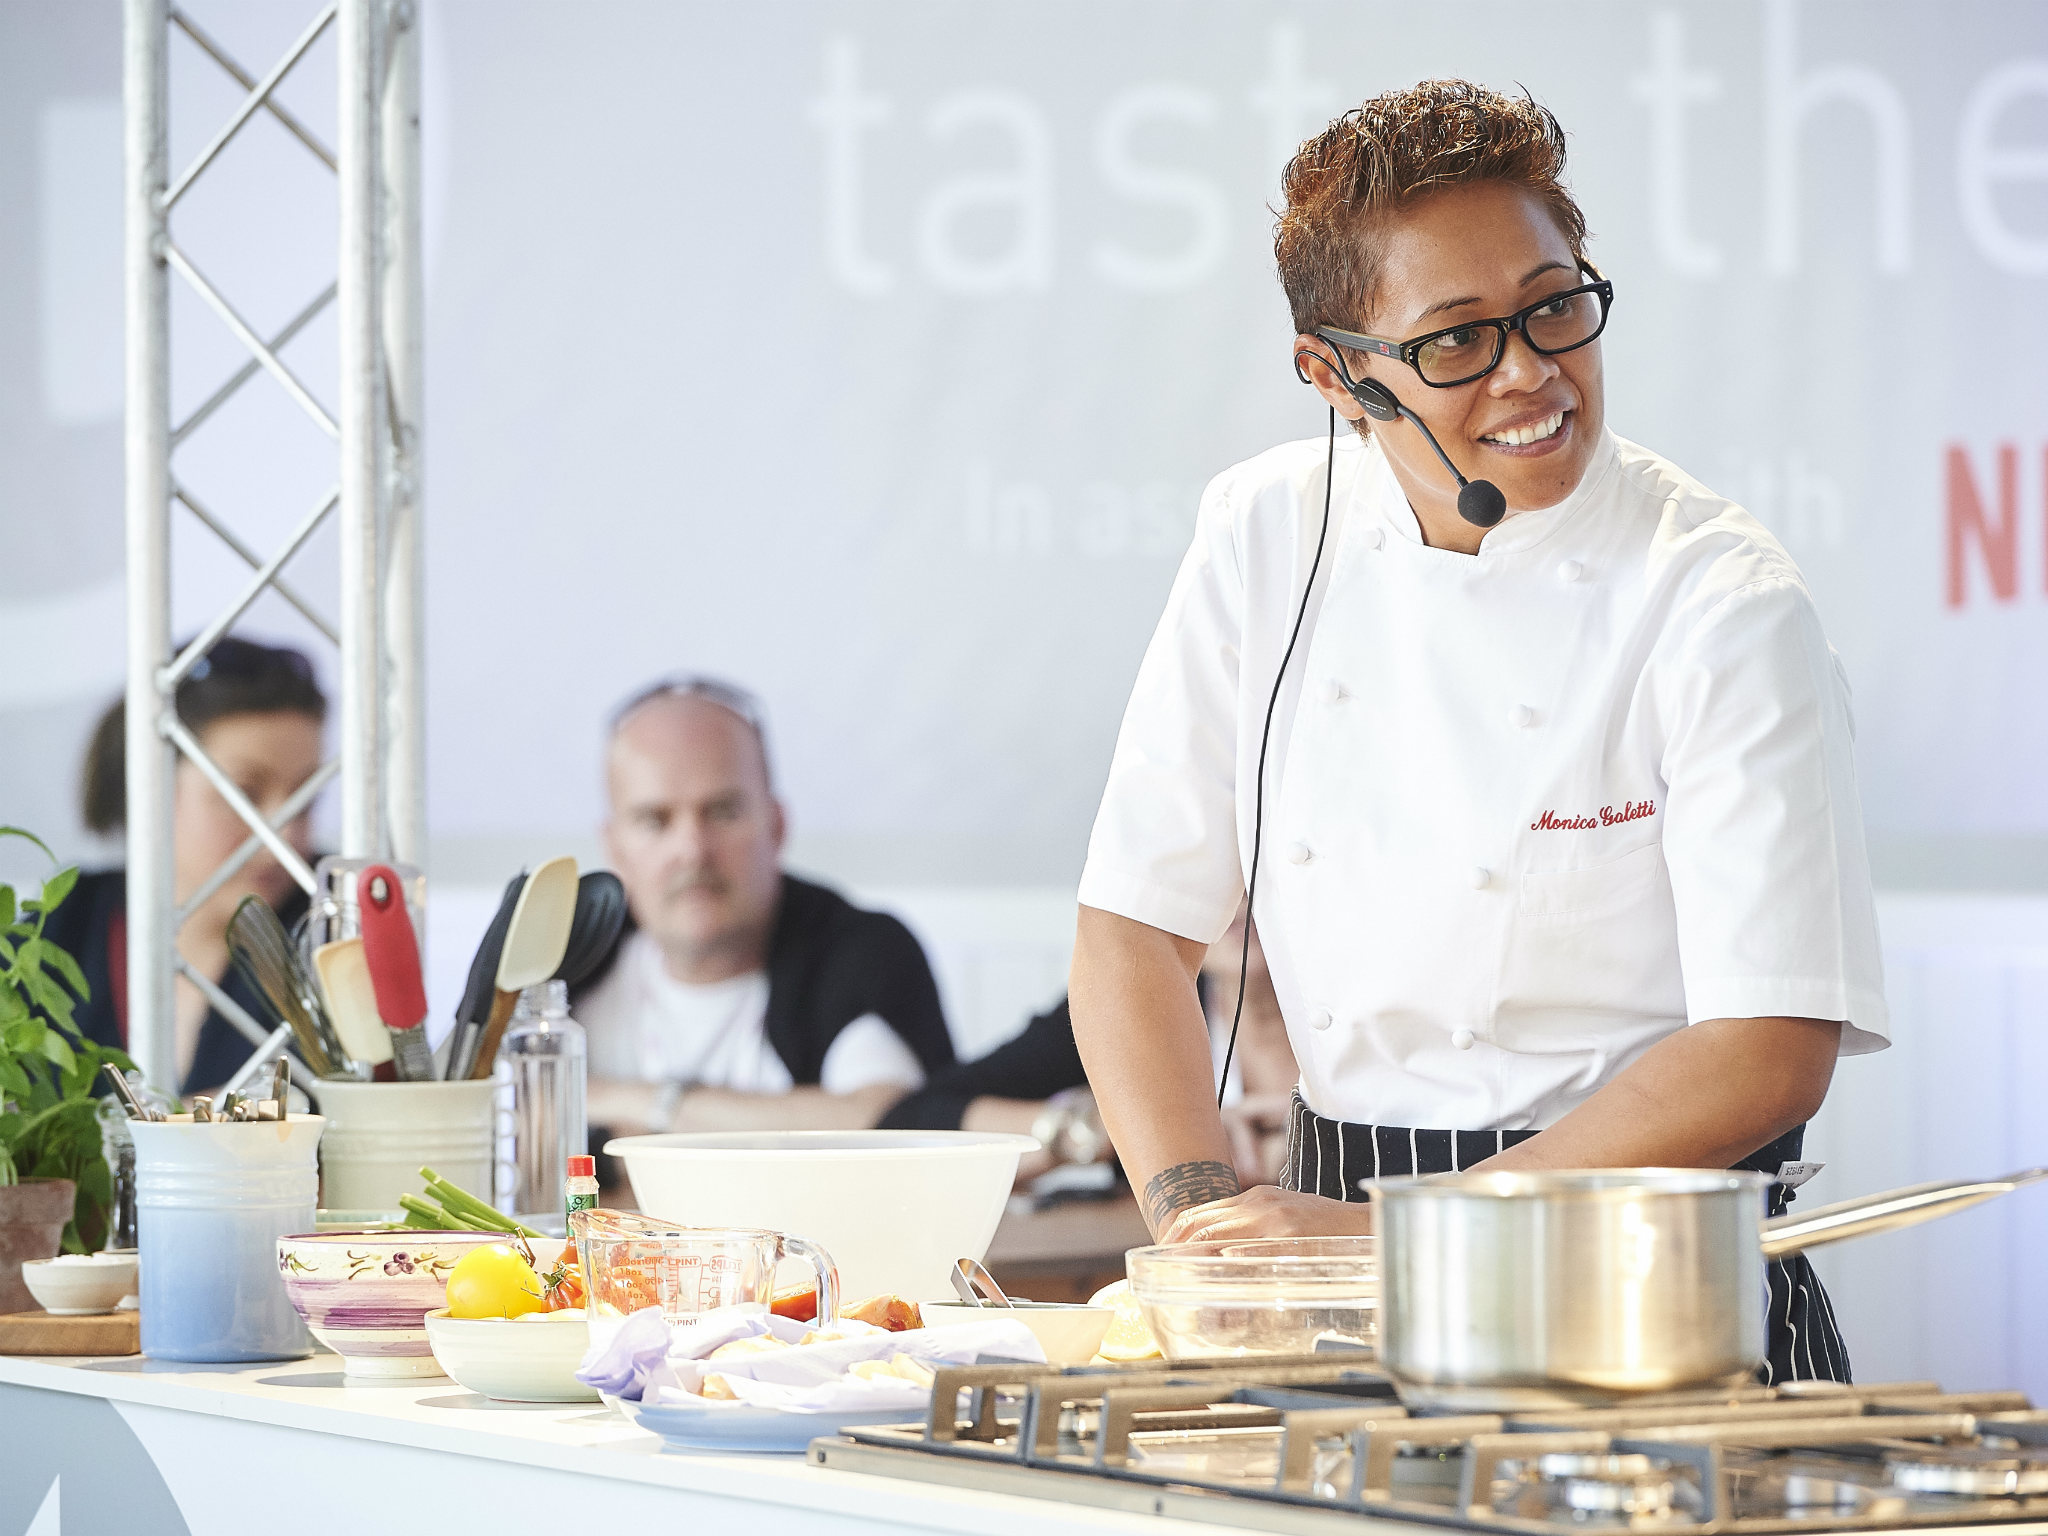 Star chefs at Taste of London